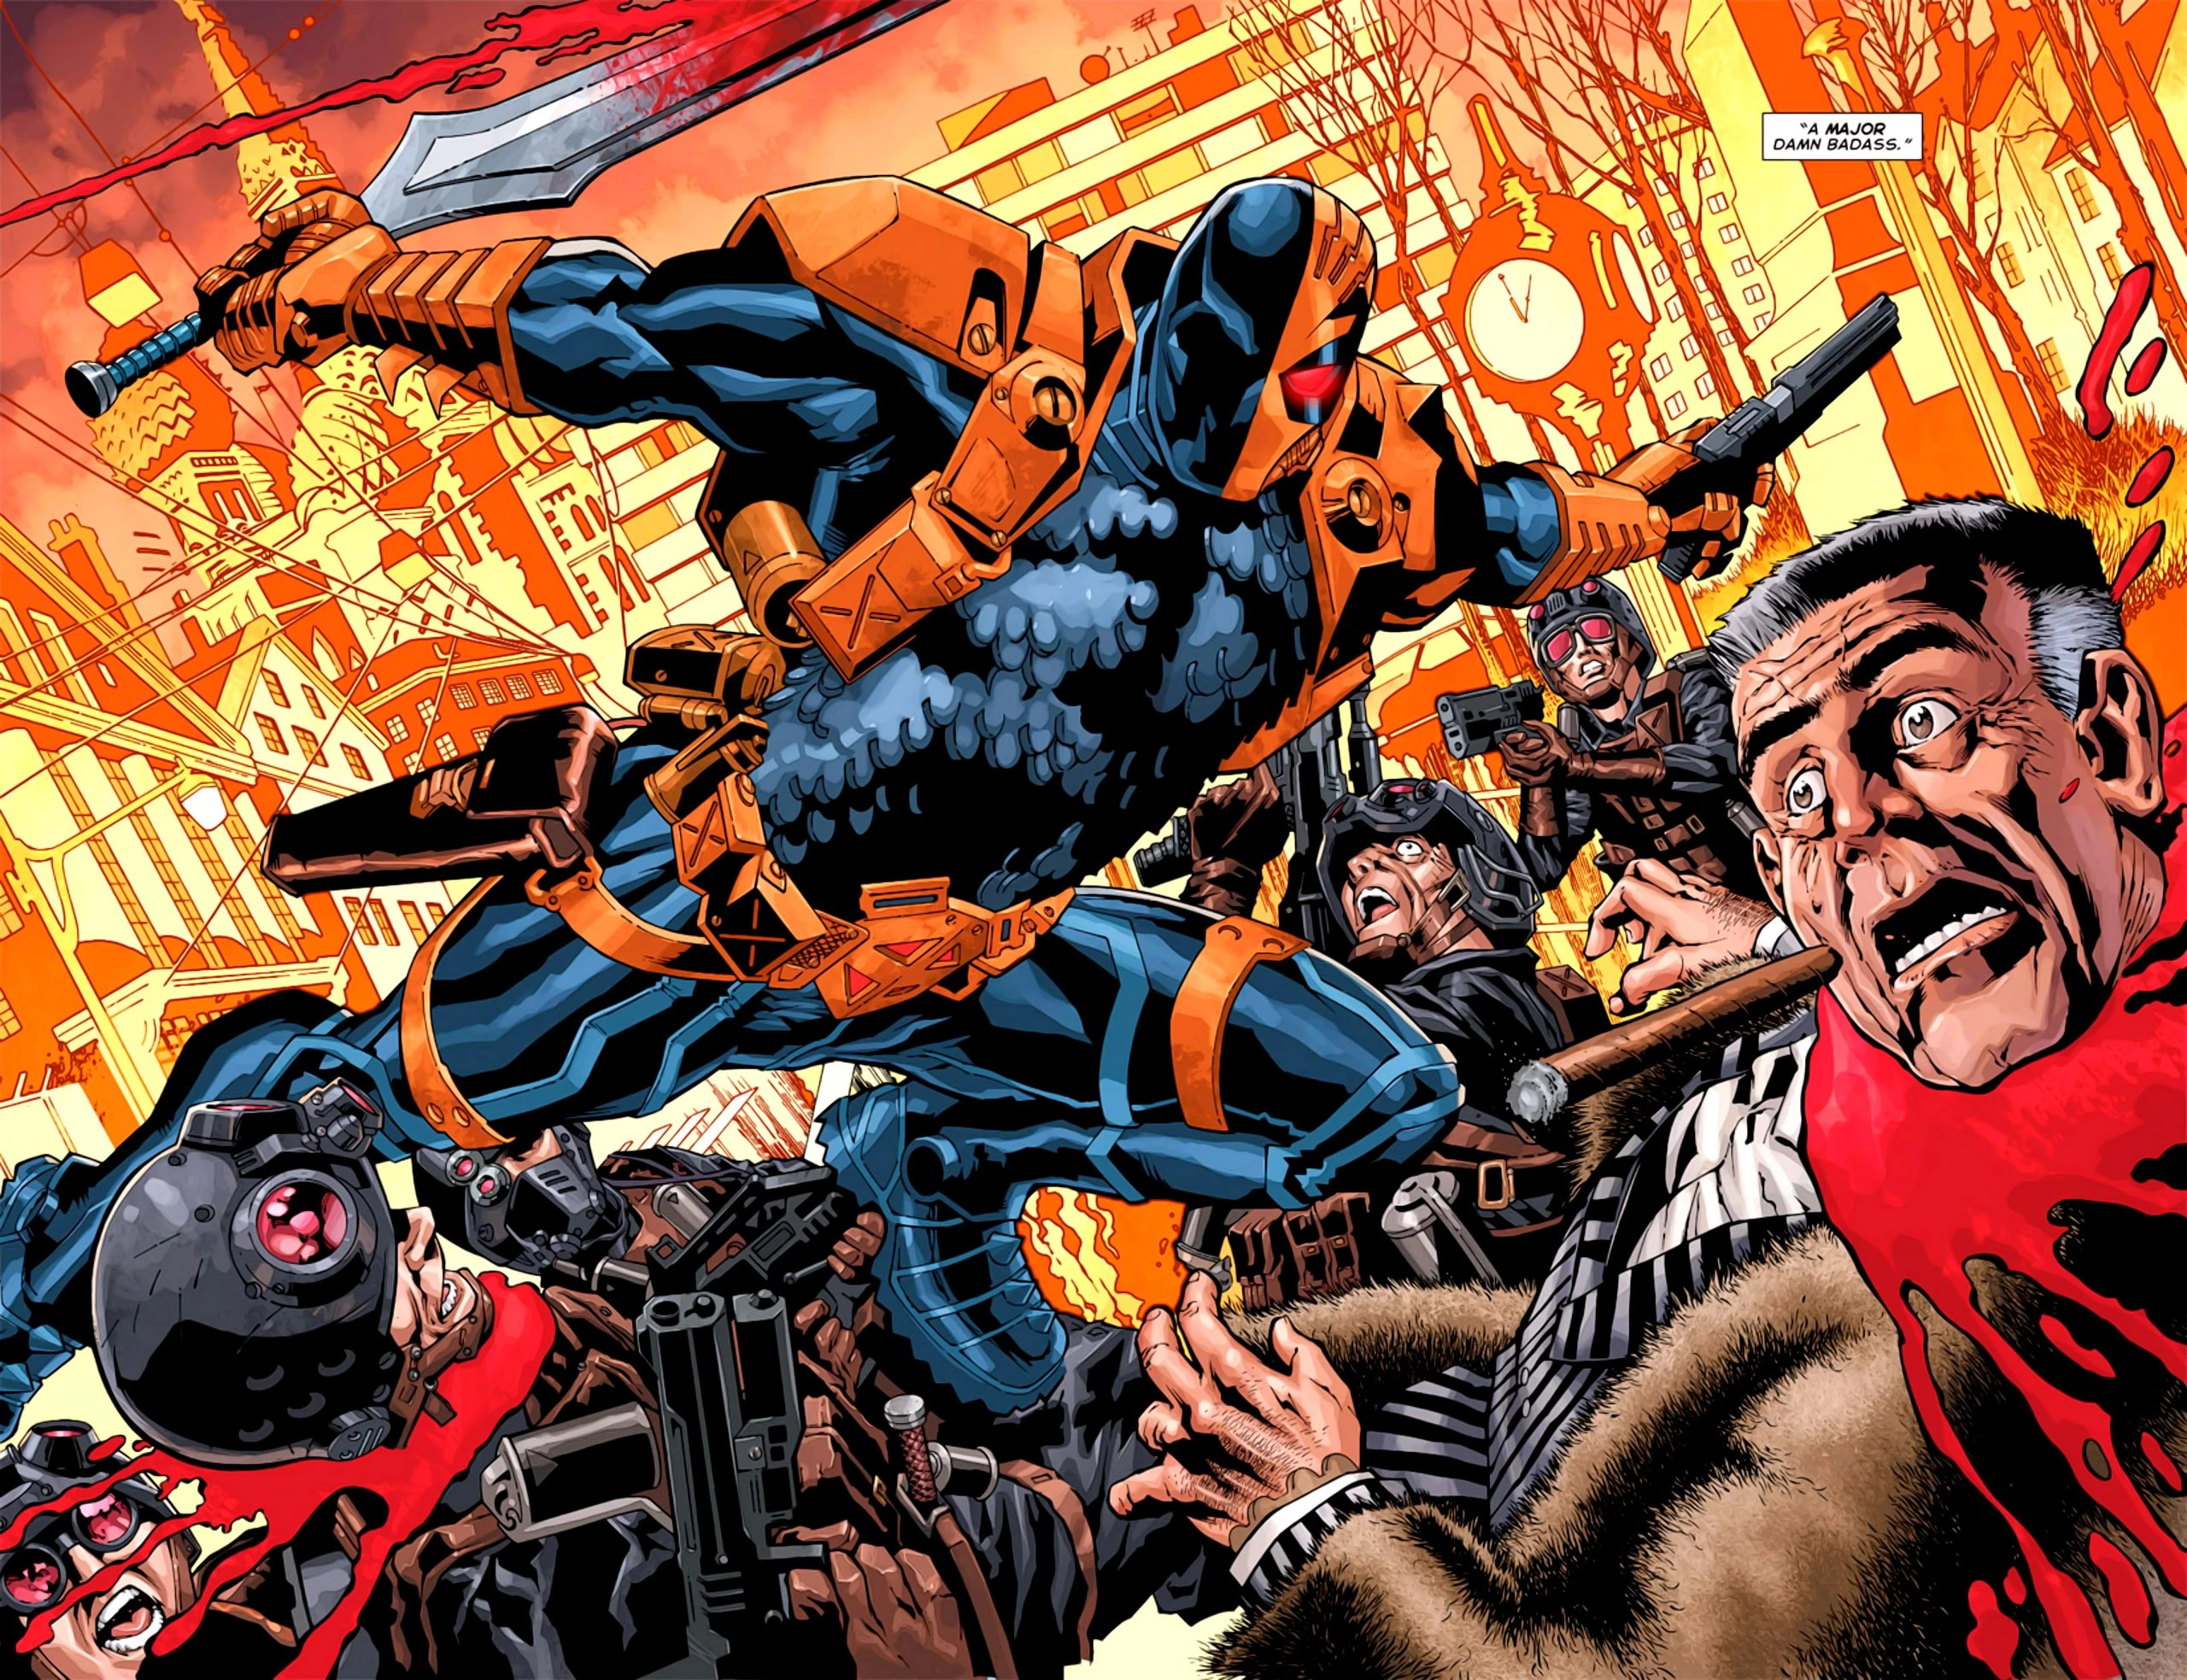 https://i1.wp.com/img4.wikia.nocookie.net/__cb20111001201717/marvel_dc/images/a/a4/Deathstroke_Prime_Earth_001.jpg